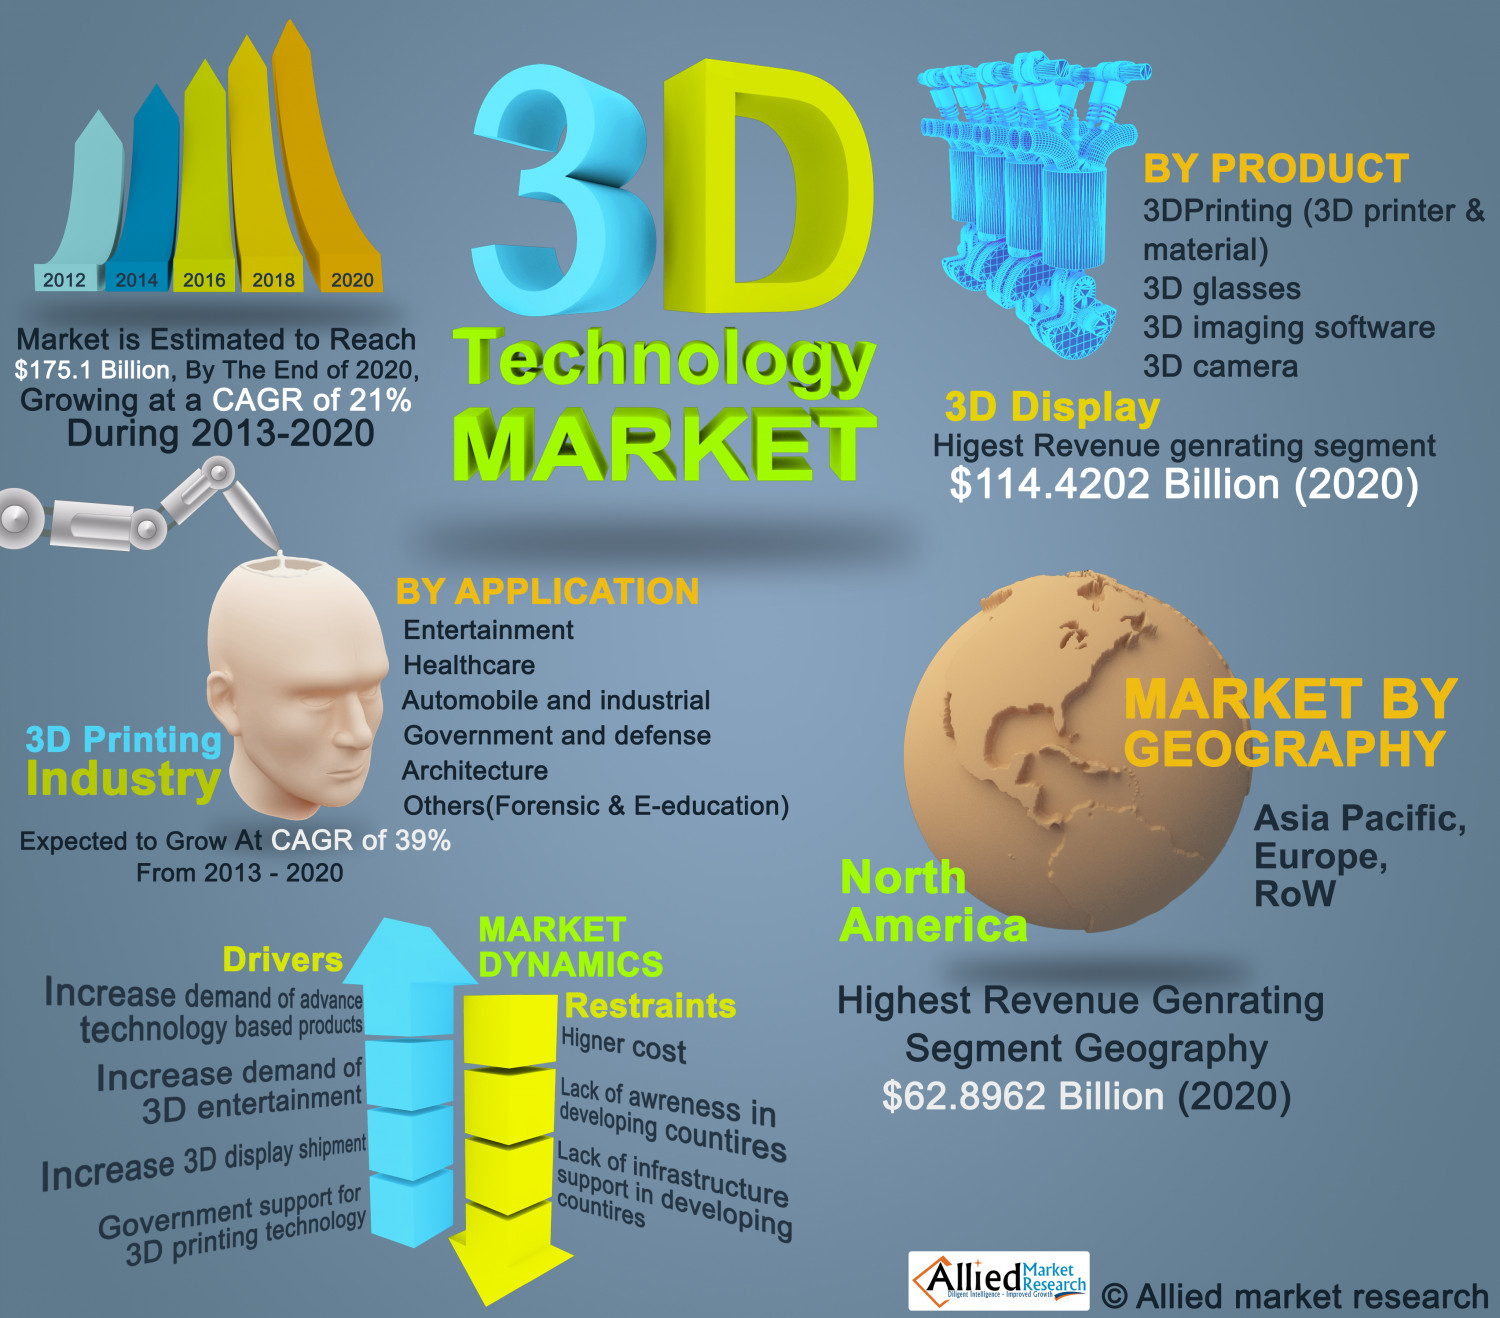 Global Three Dimensional Transistor Market Overview 2018: Top Manufacturer Intel, Hackaday